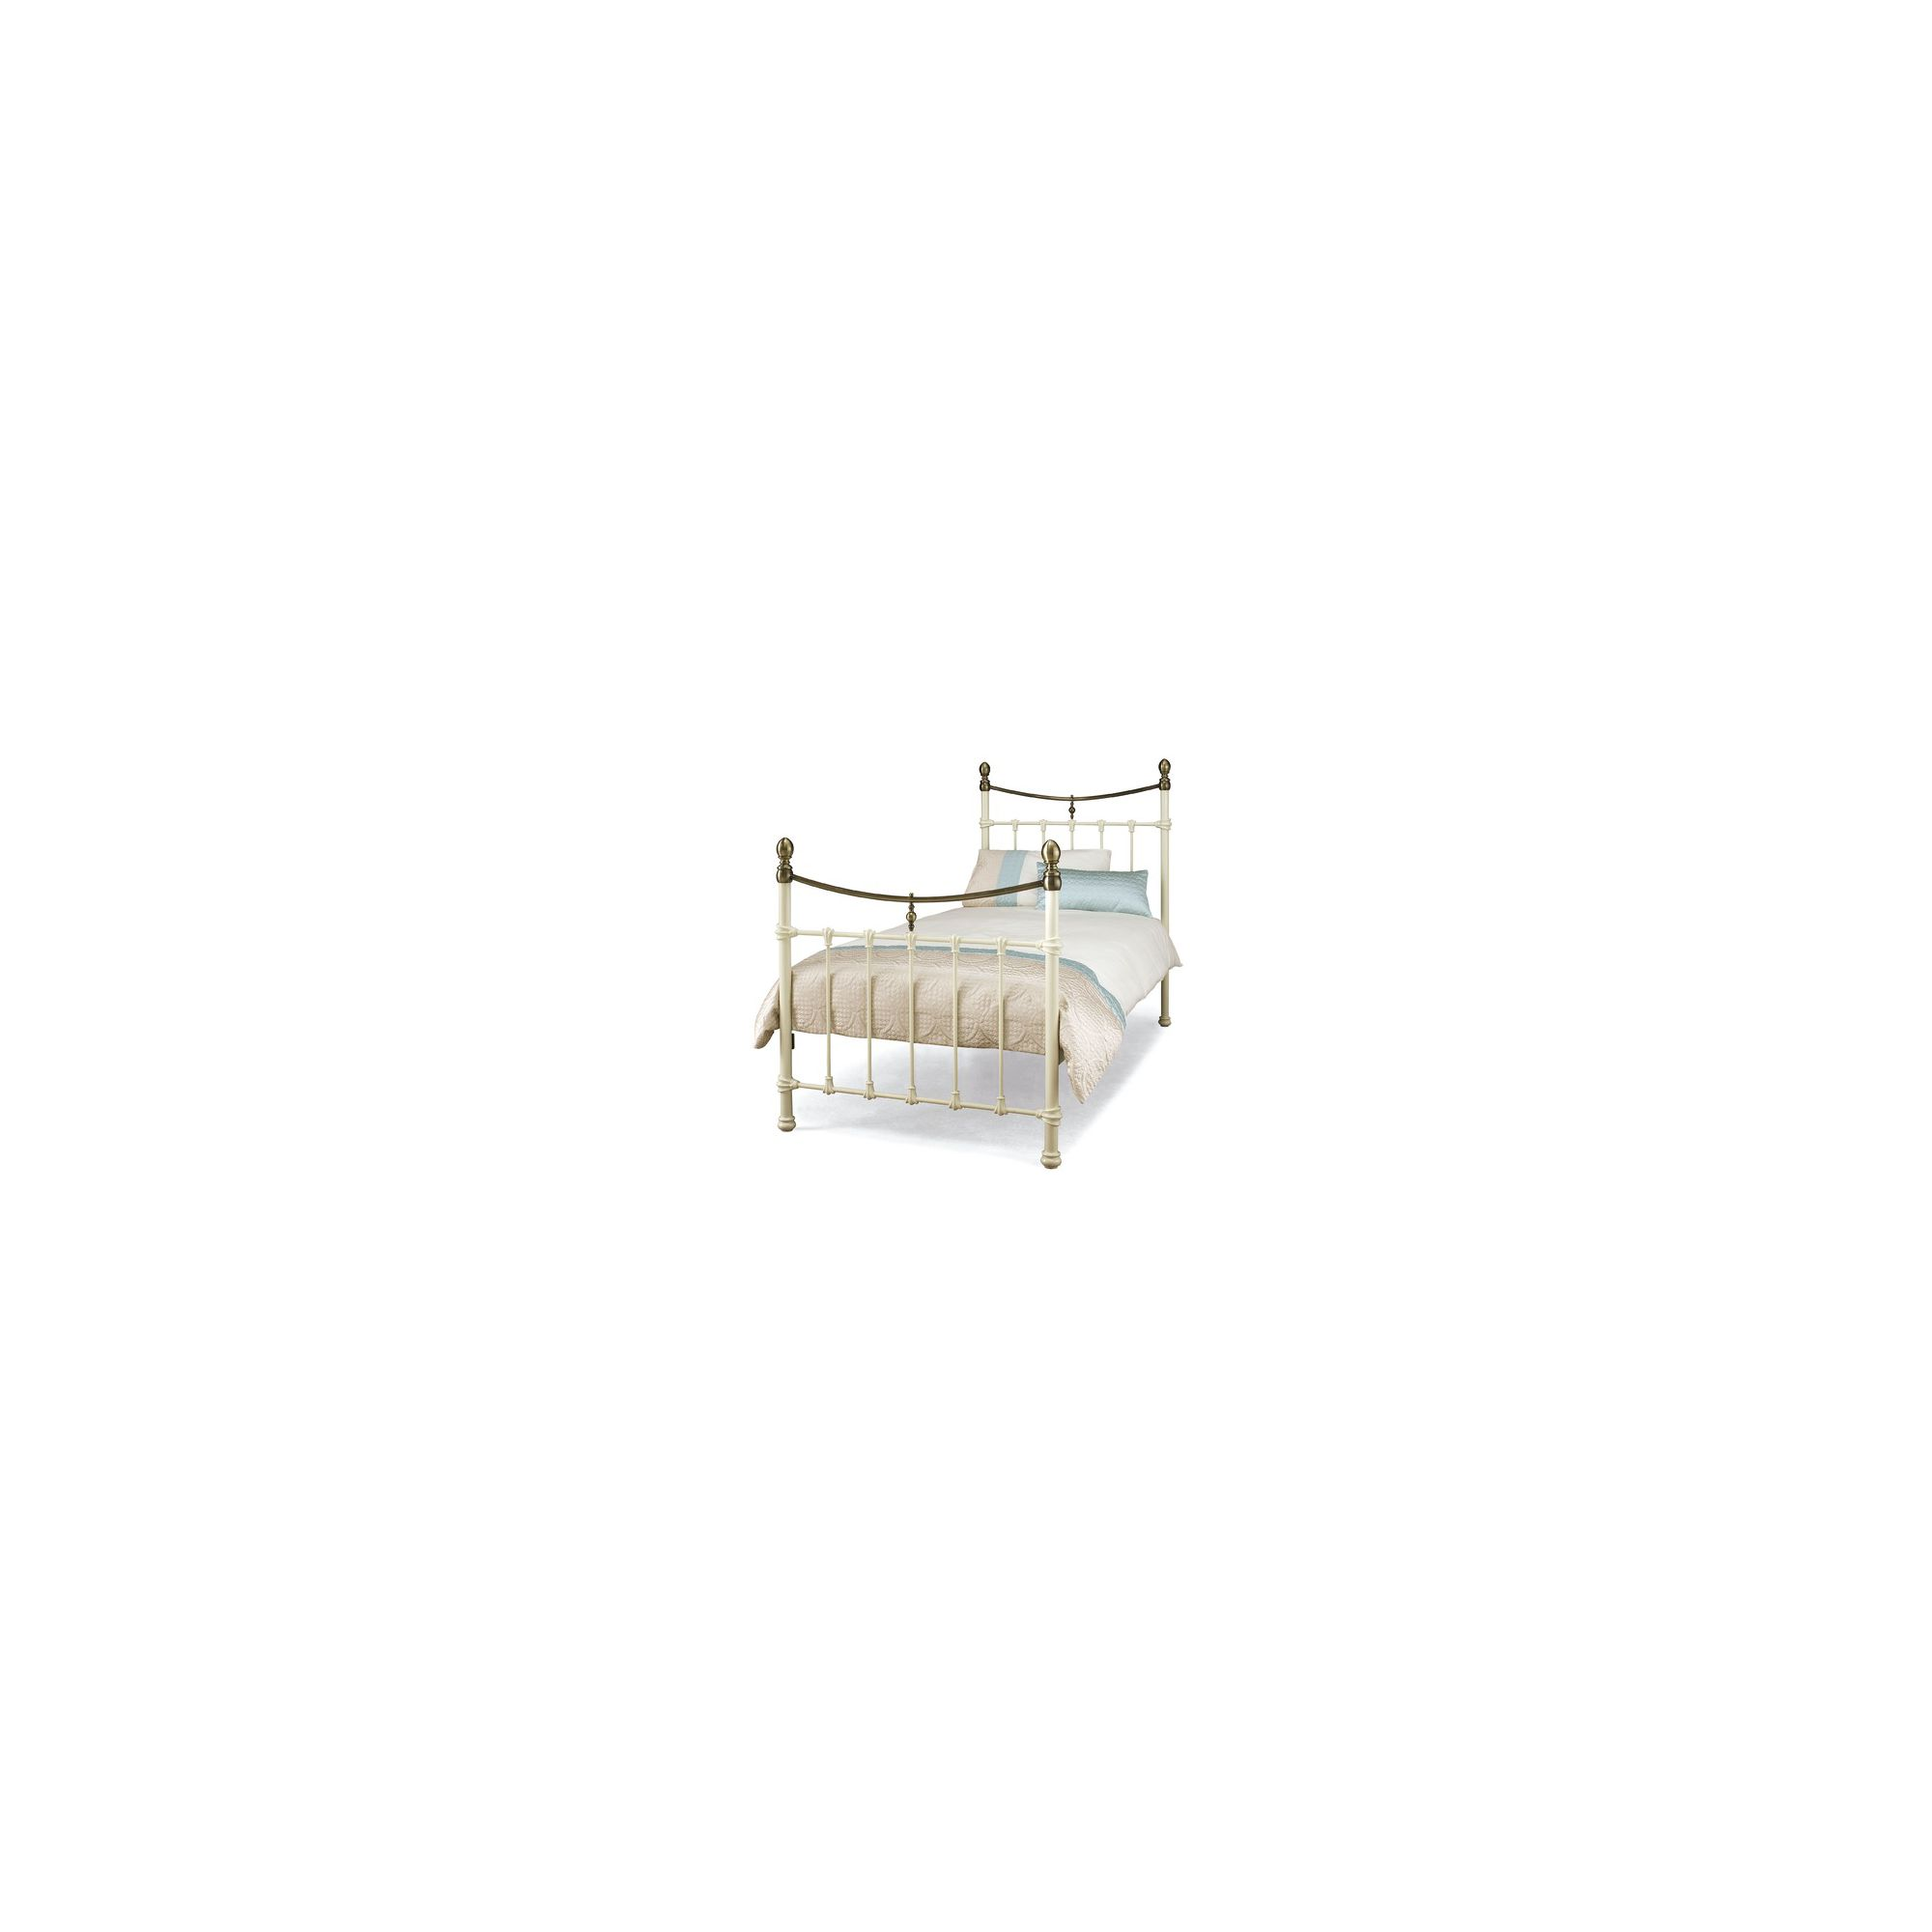 Serene Furnishings Edwardian Bed Frame - Single at Tesco Direct